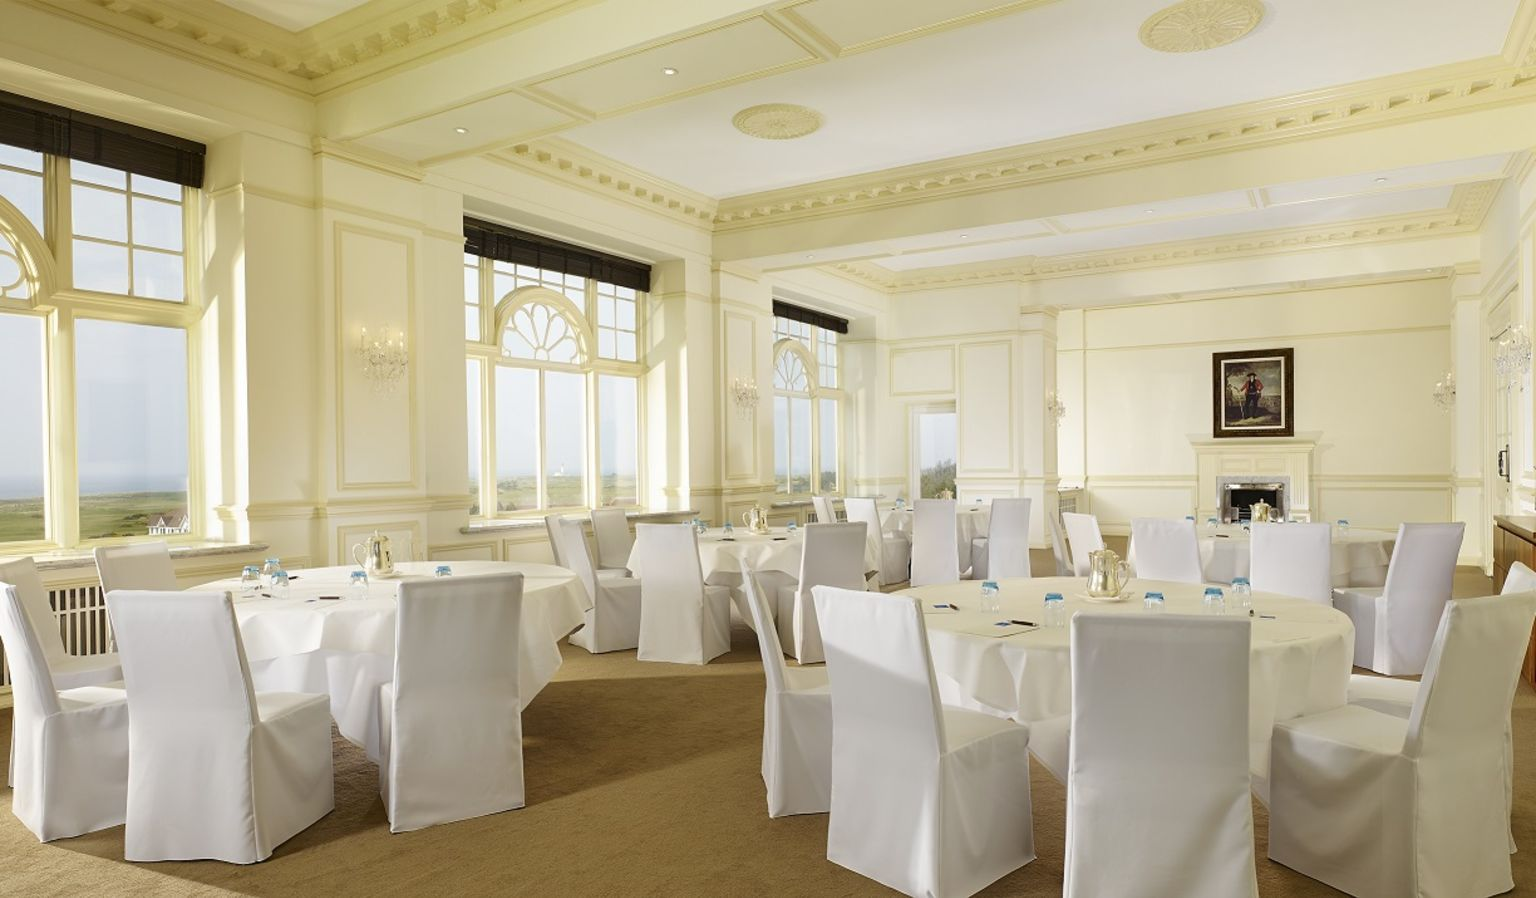 Ailsa Craig Event Room with Breakout Tables for Meeting